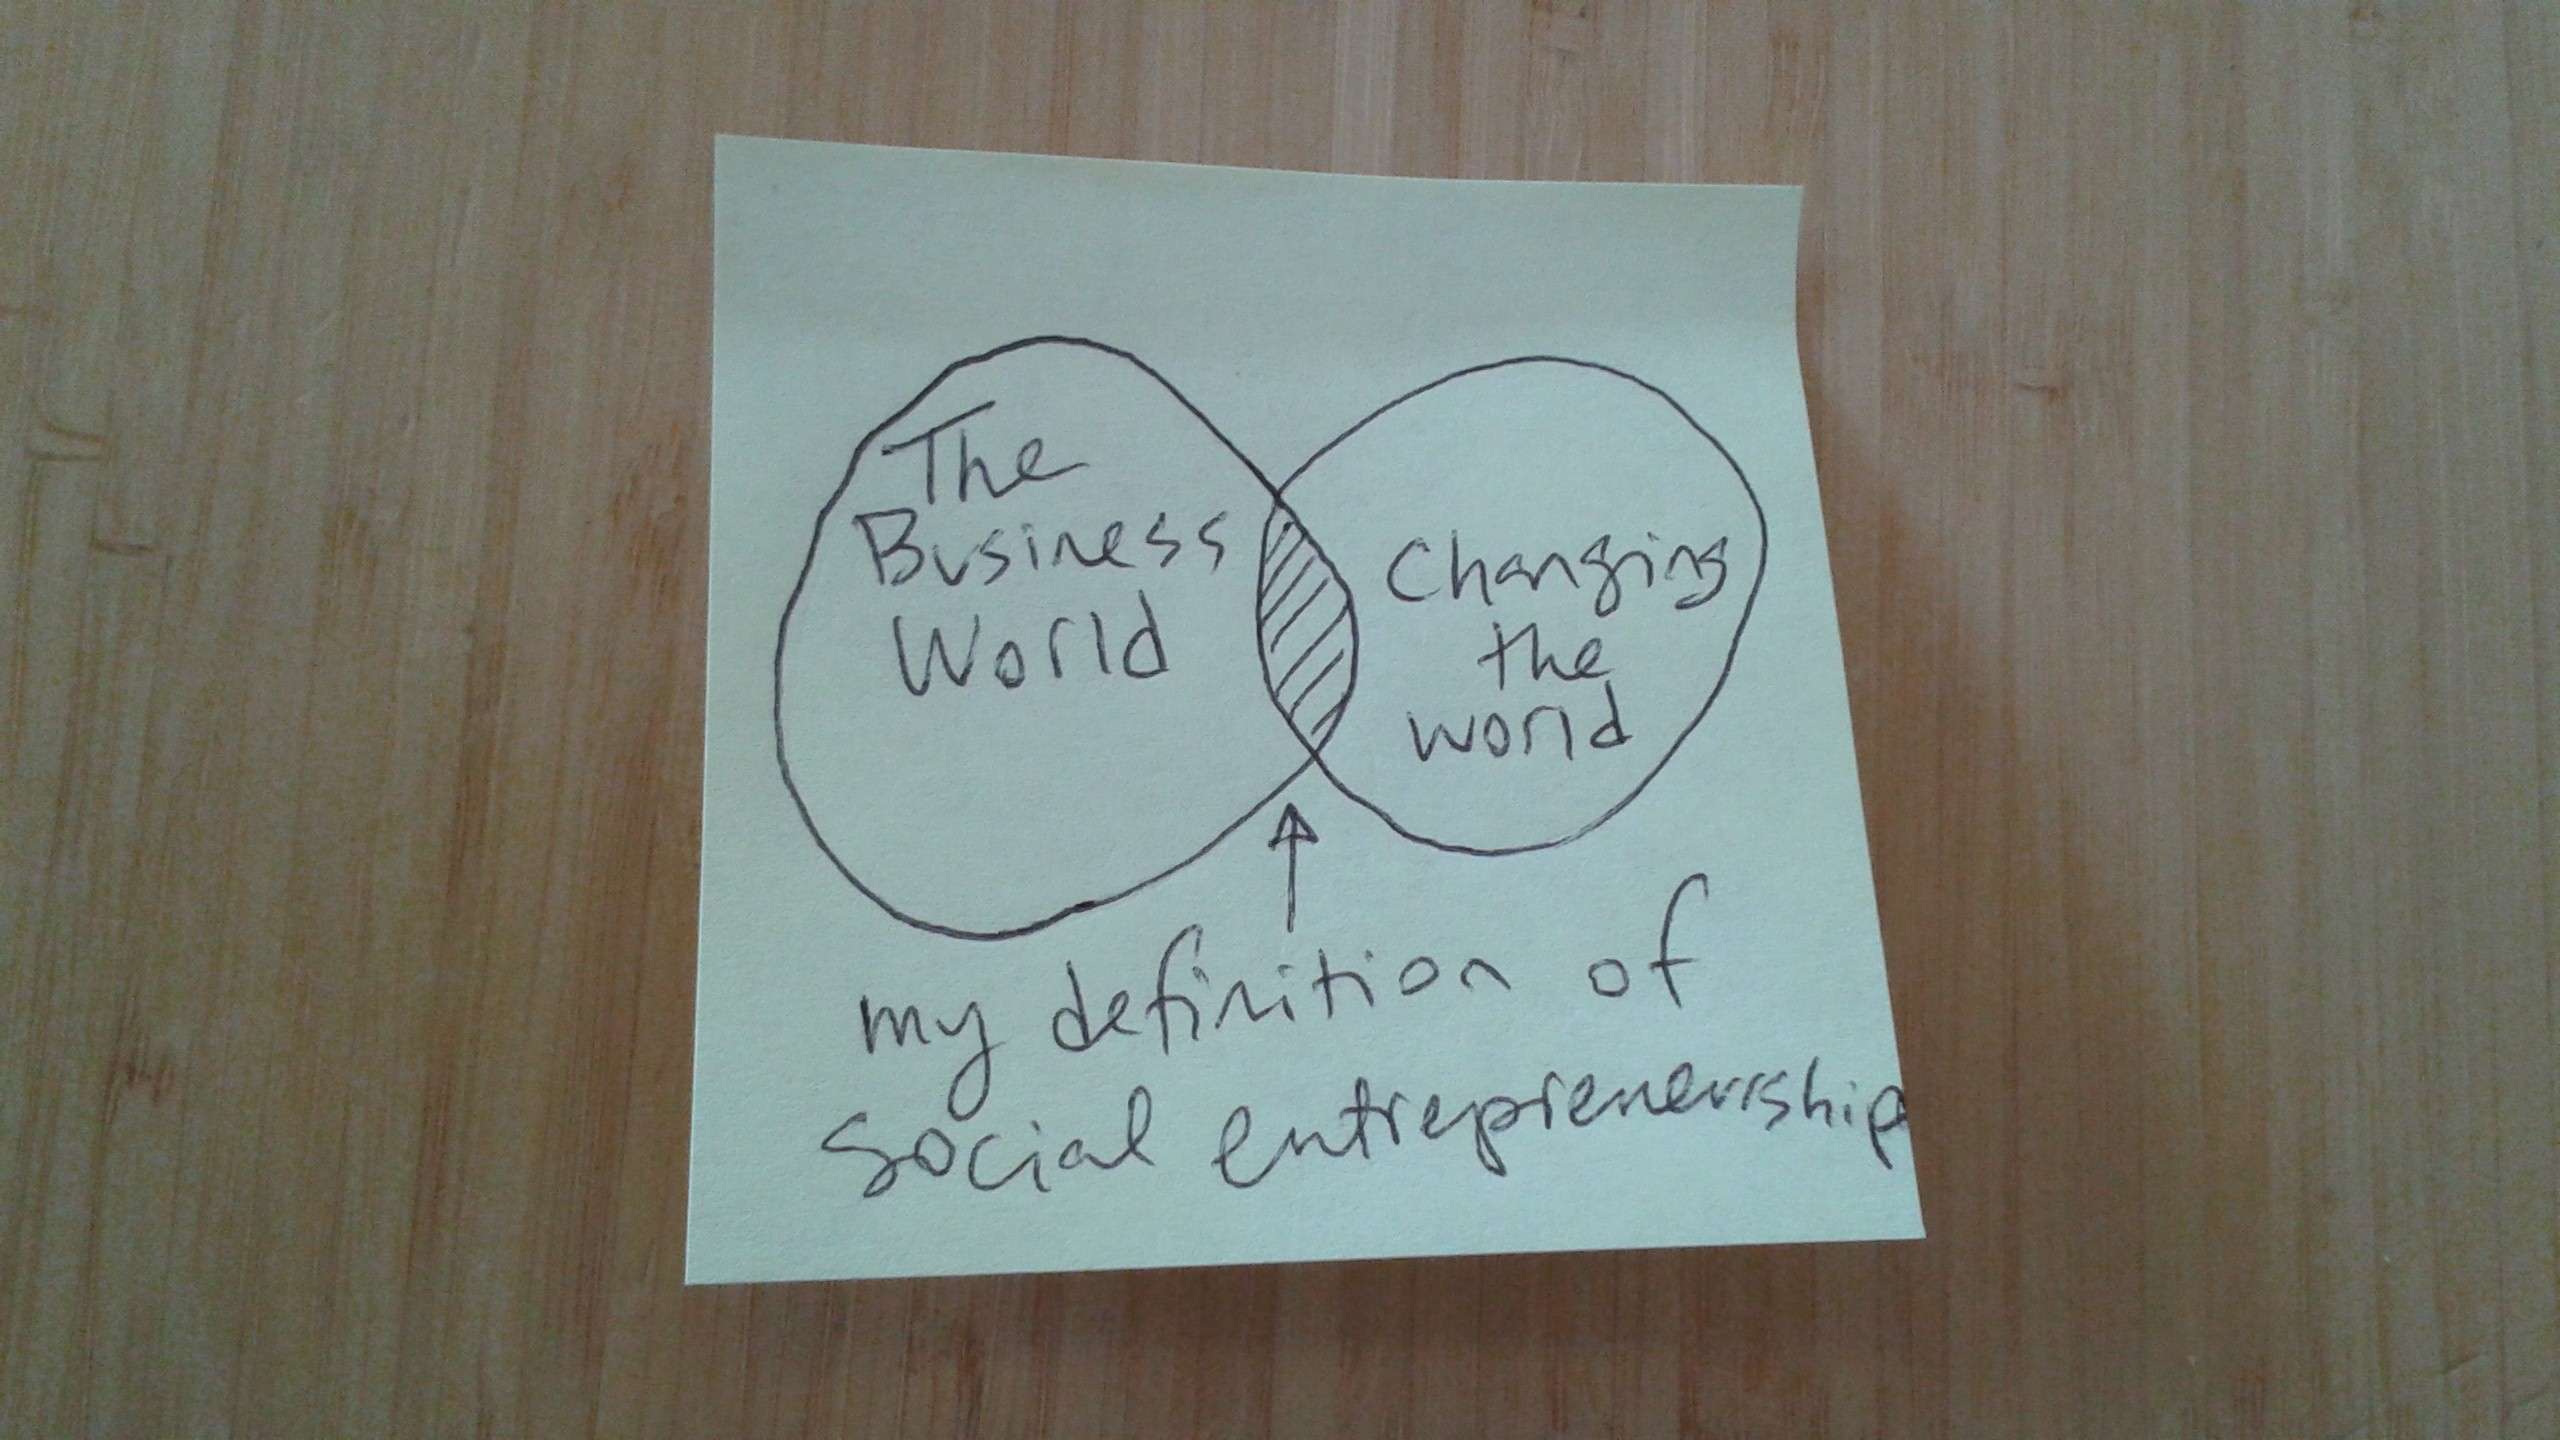 My Definition of Social Entrepreneurship: The Intersection Between the Business World and Changing the World